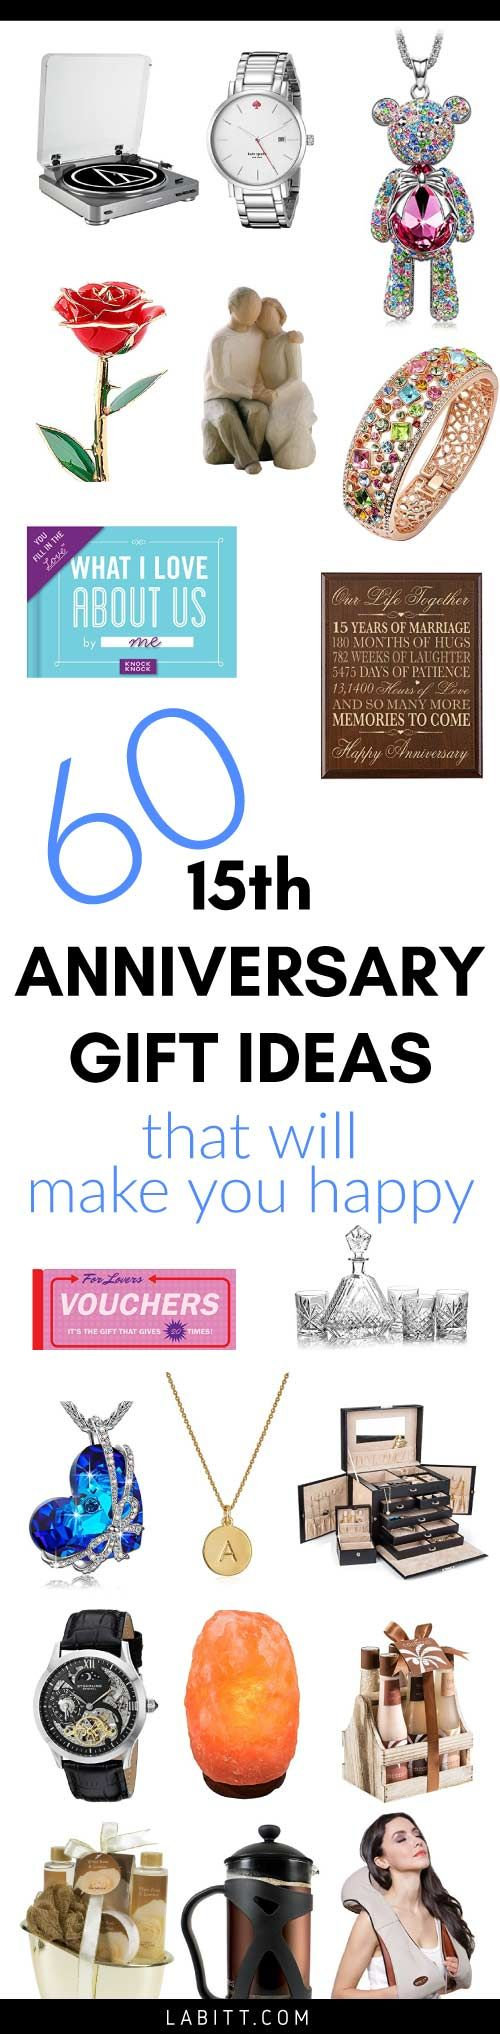 155 Best Images About Anniversary Gift Ideas On Pinterest